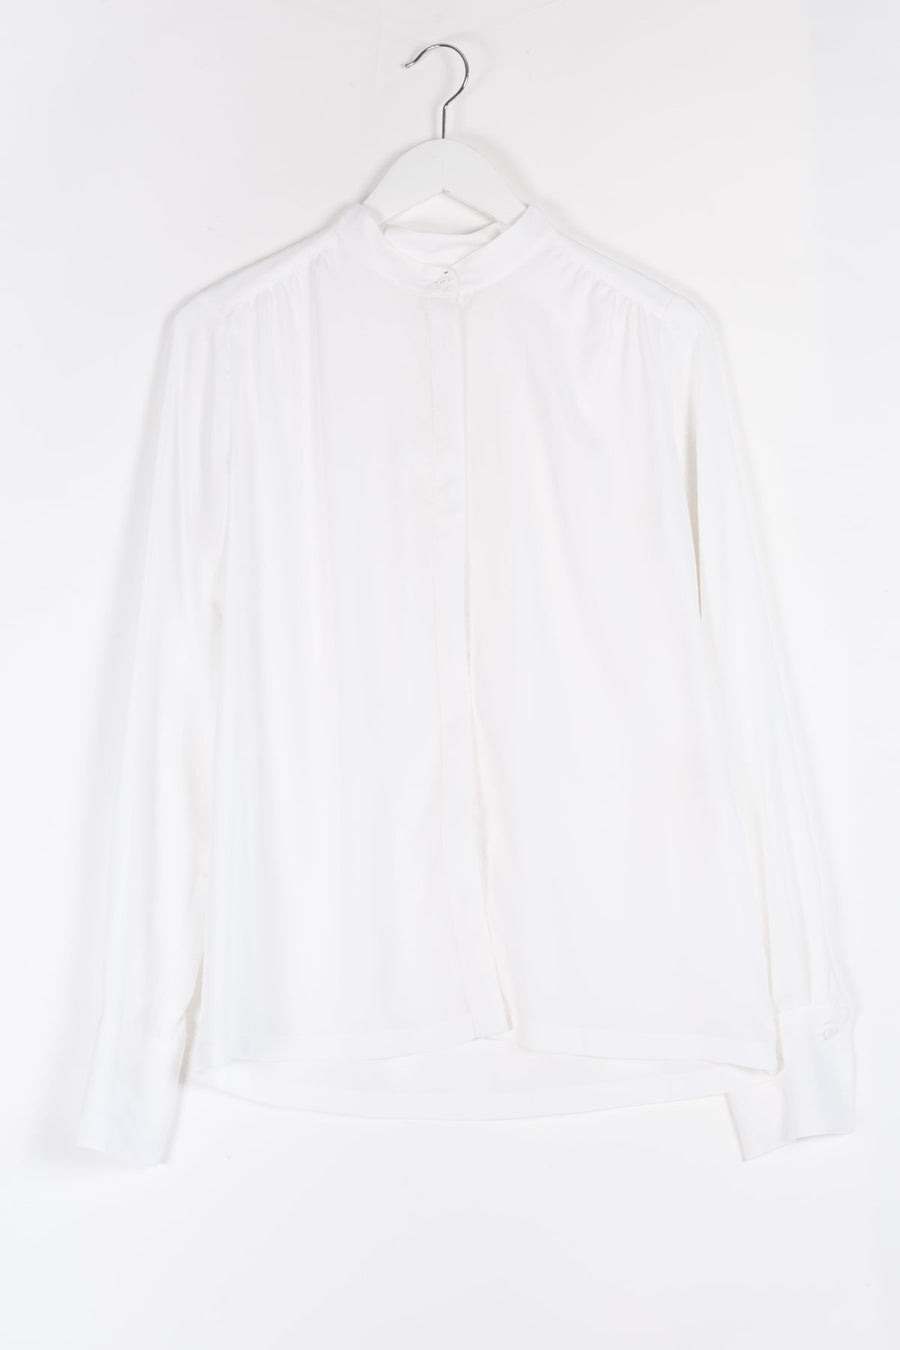 GAMMY Light Polyester Blouse - White